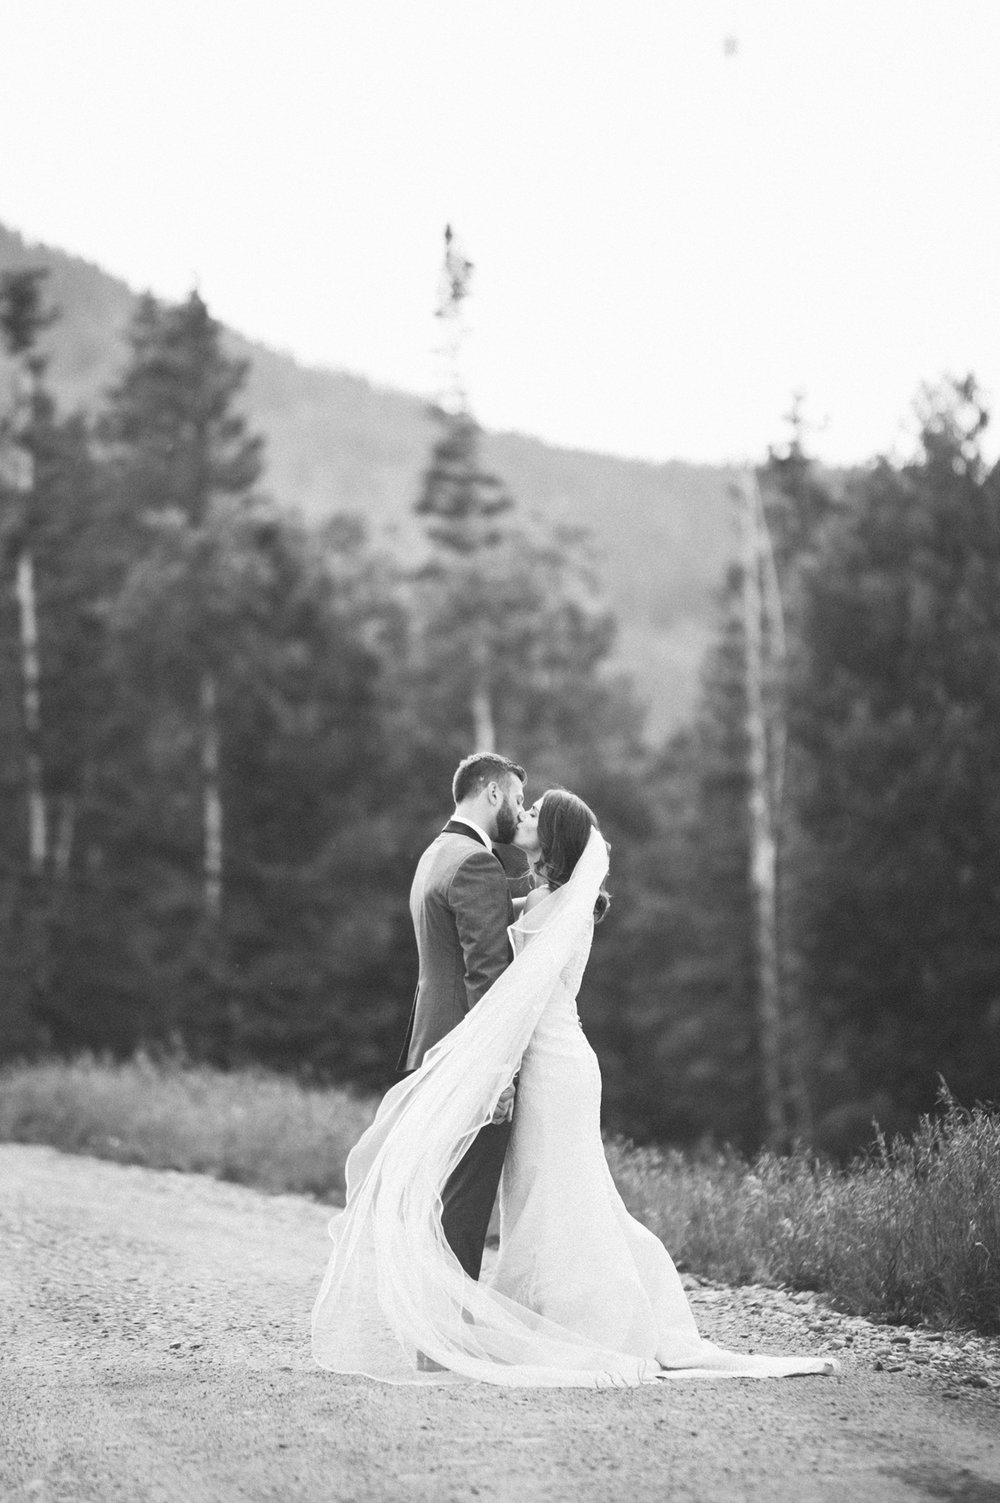 377-beaver-creek--couple--portrait--mountain-top--black-and-white--kiss.jpg